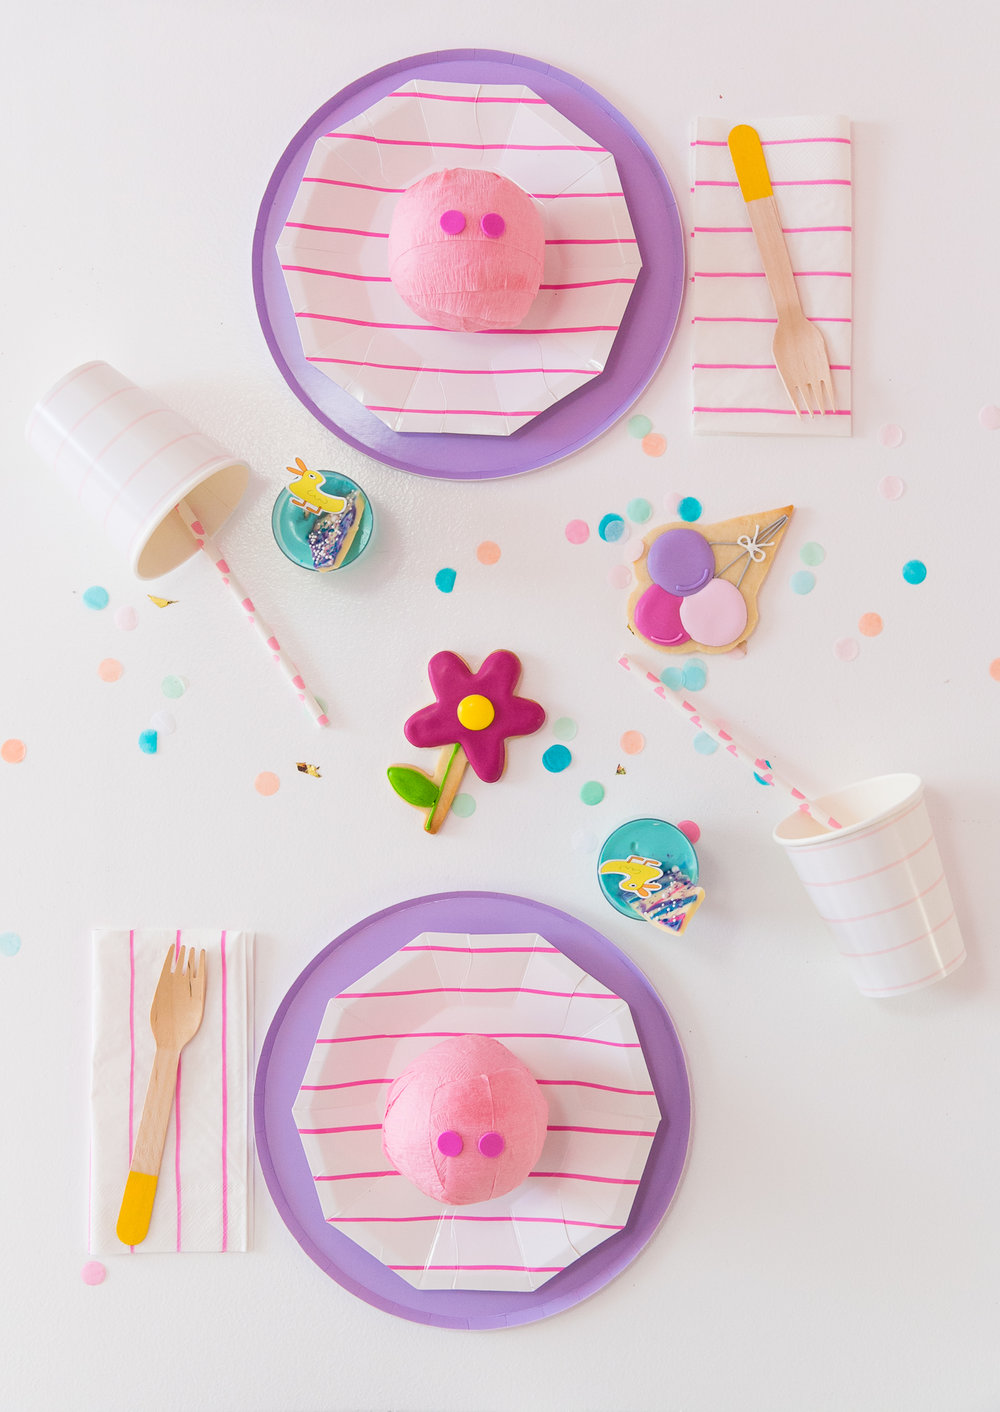 Oui Party - Peppa Pig Party - Table Setting 2.jpg